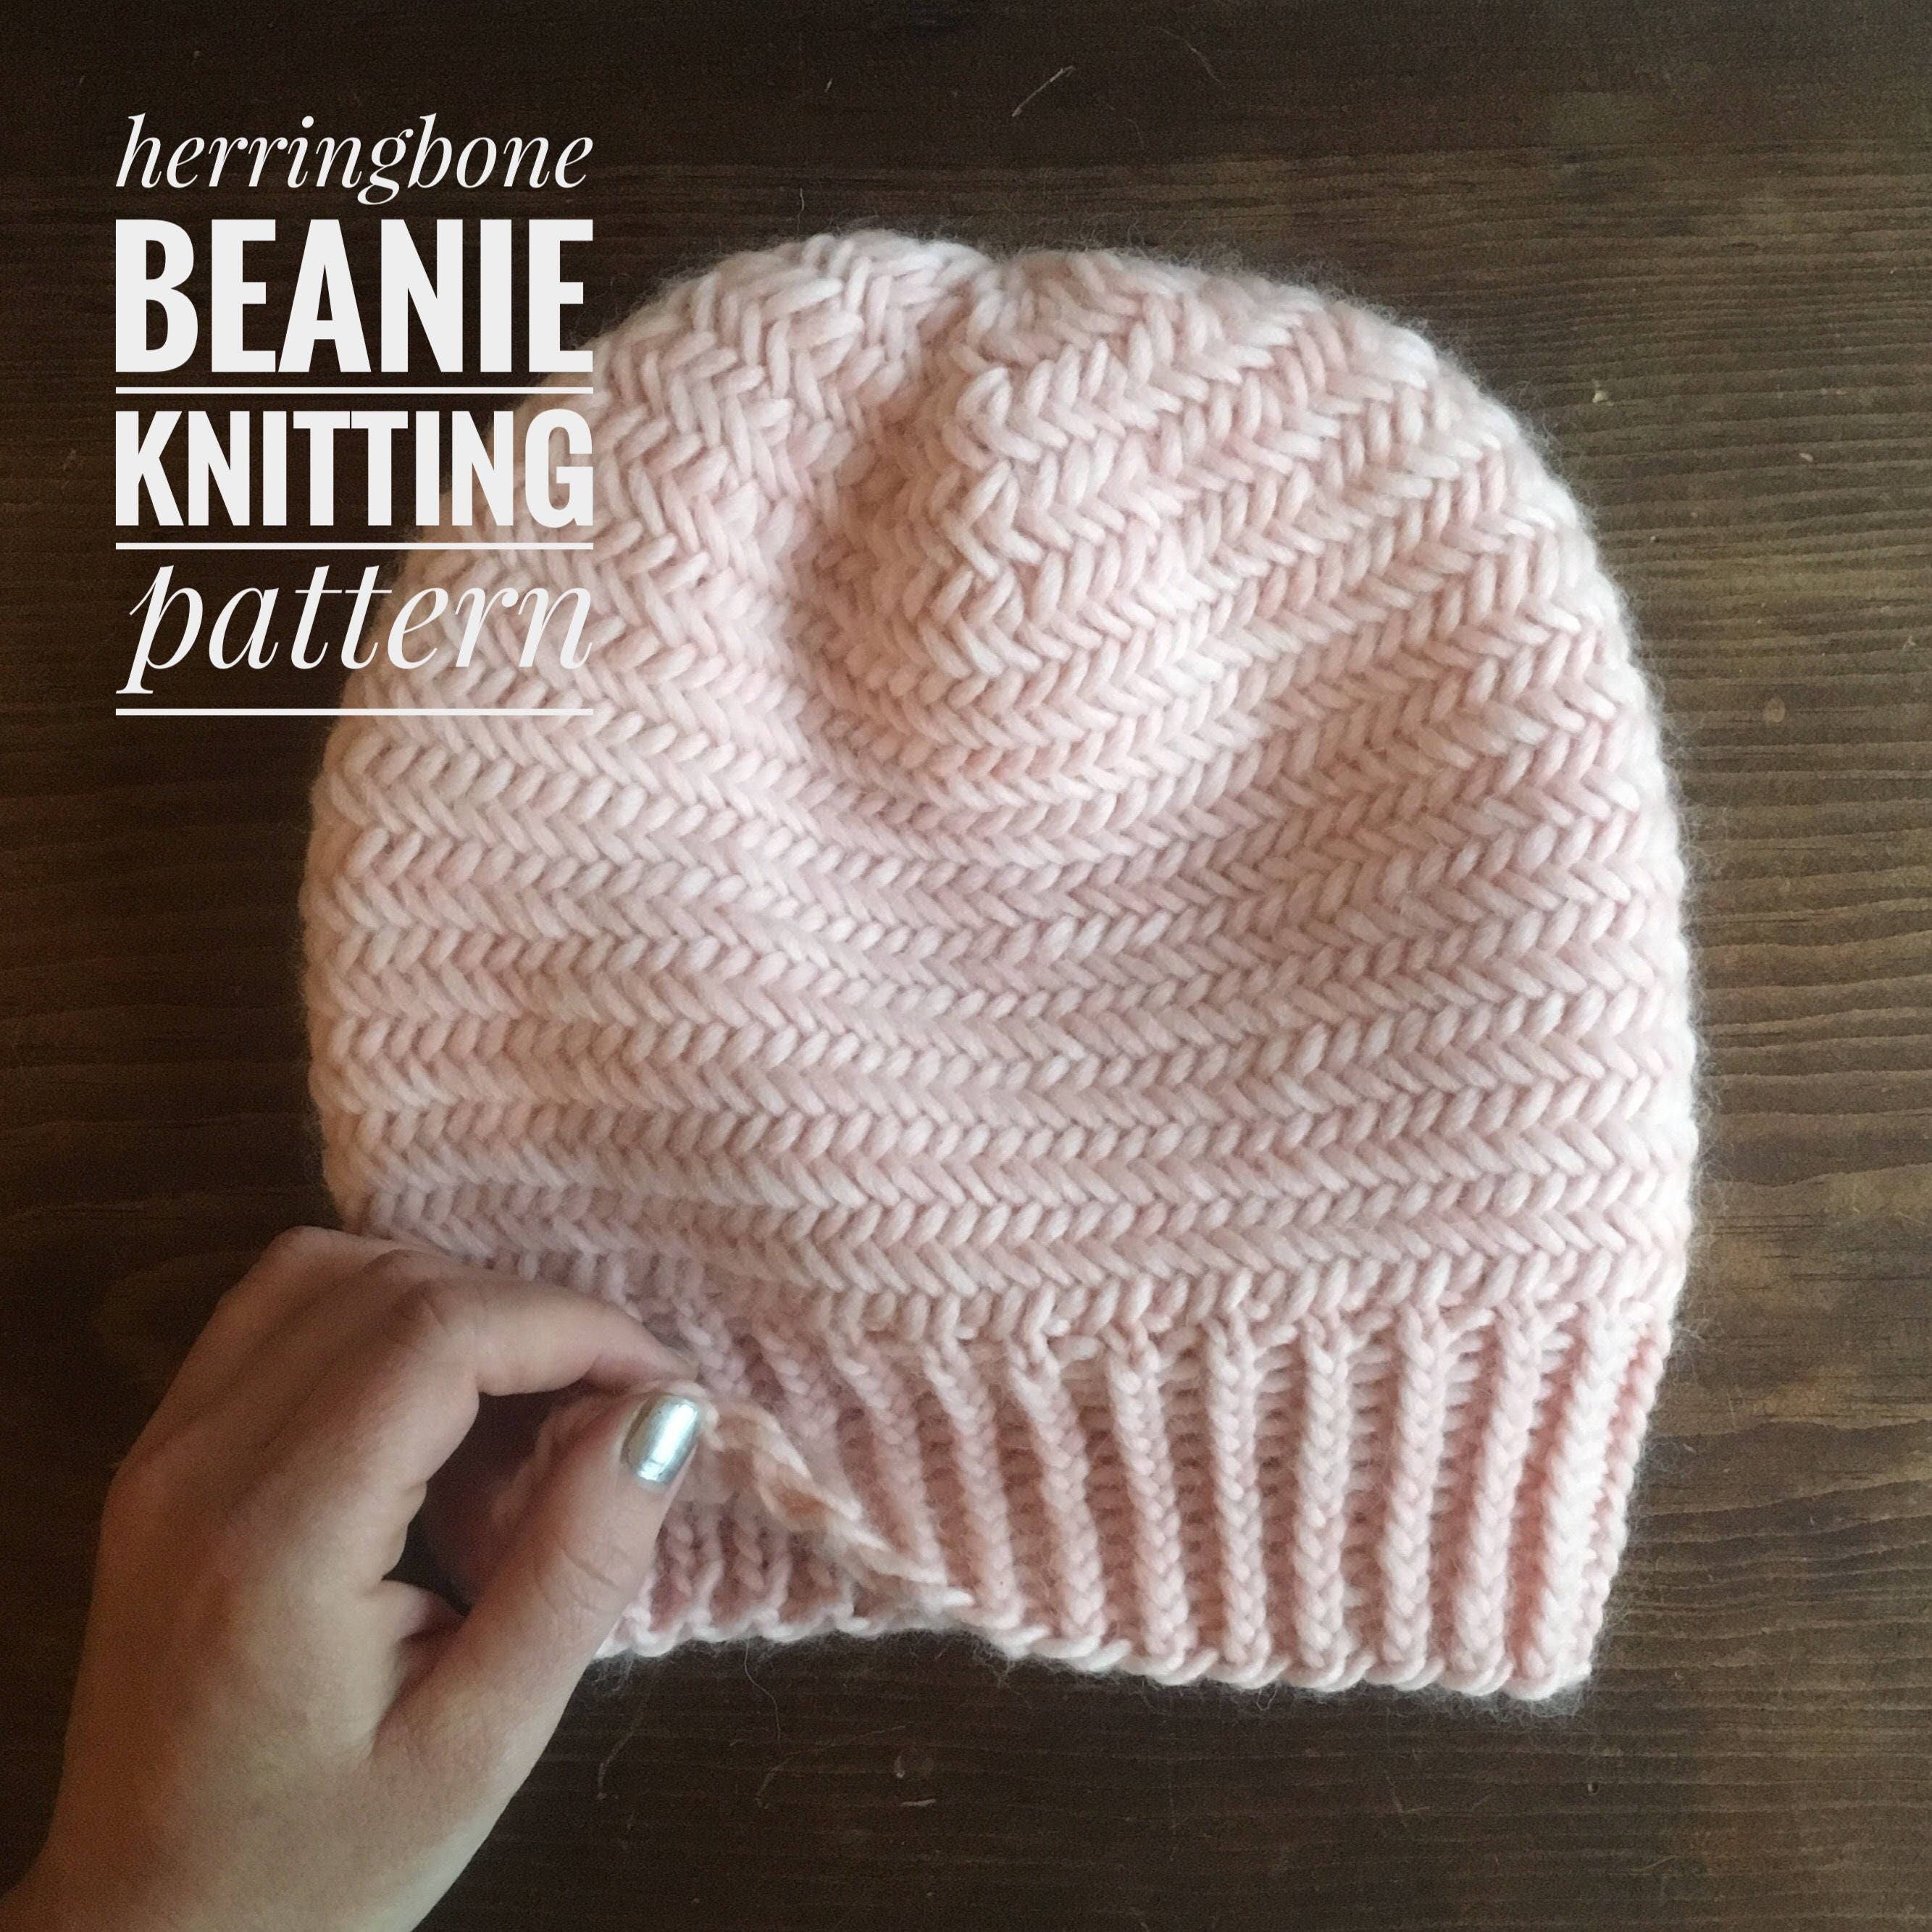 KNITTING PATTERN: Herringbone Beanie from PremKnits on Etsy Studio